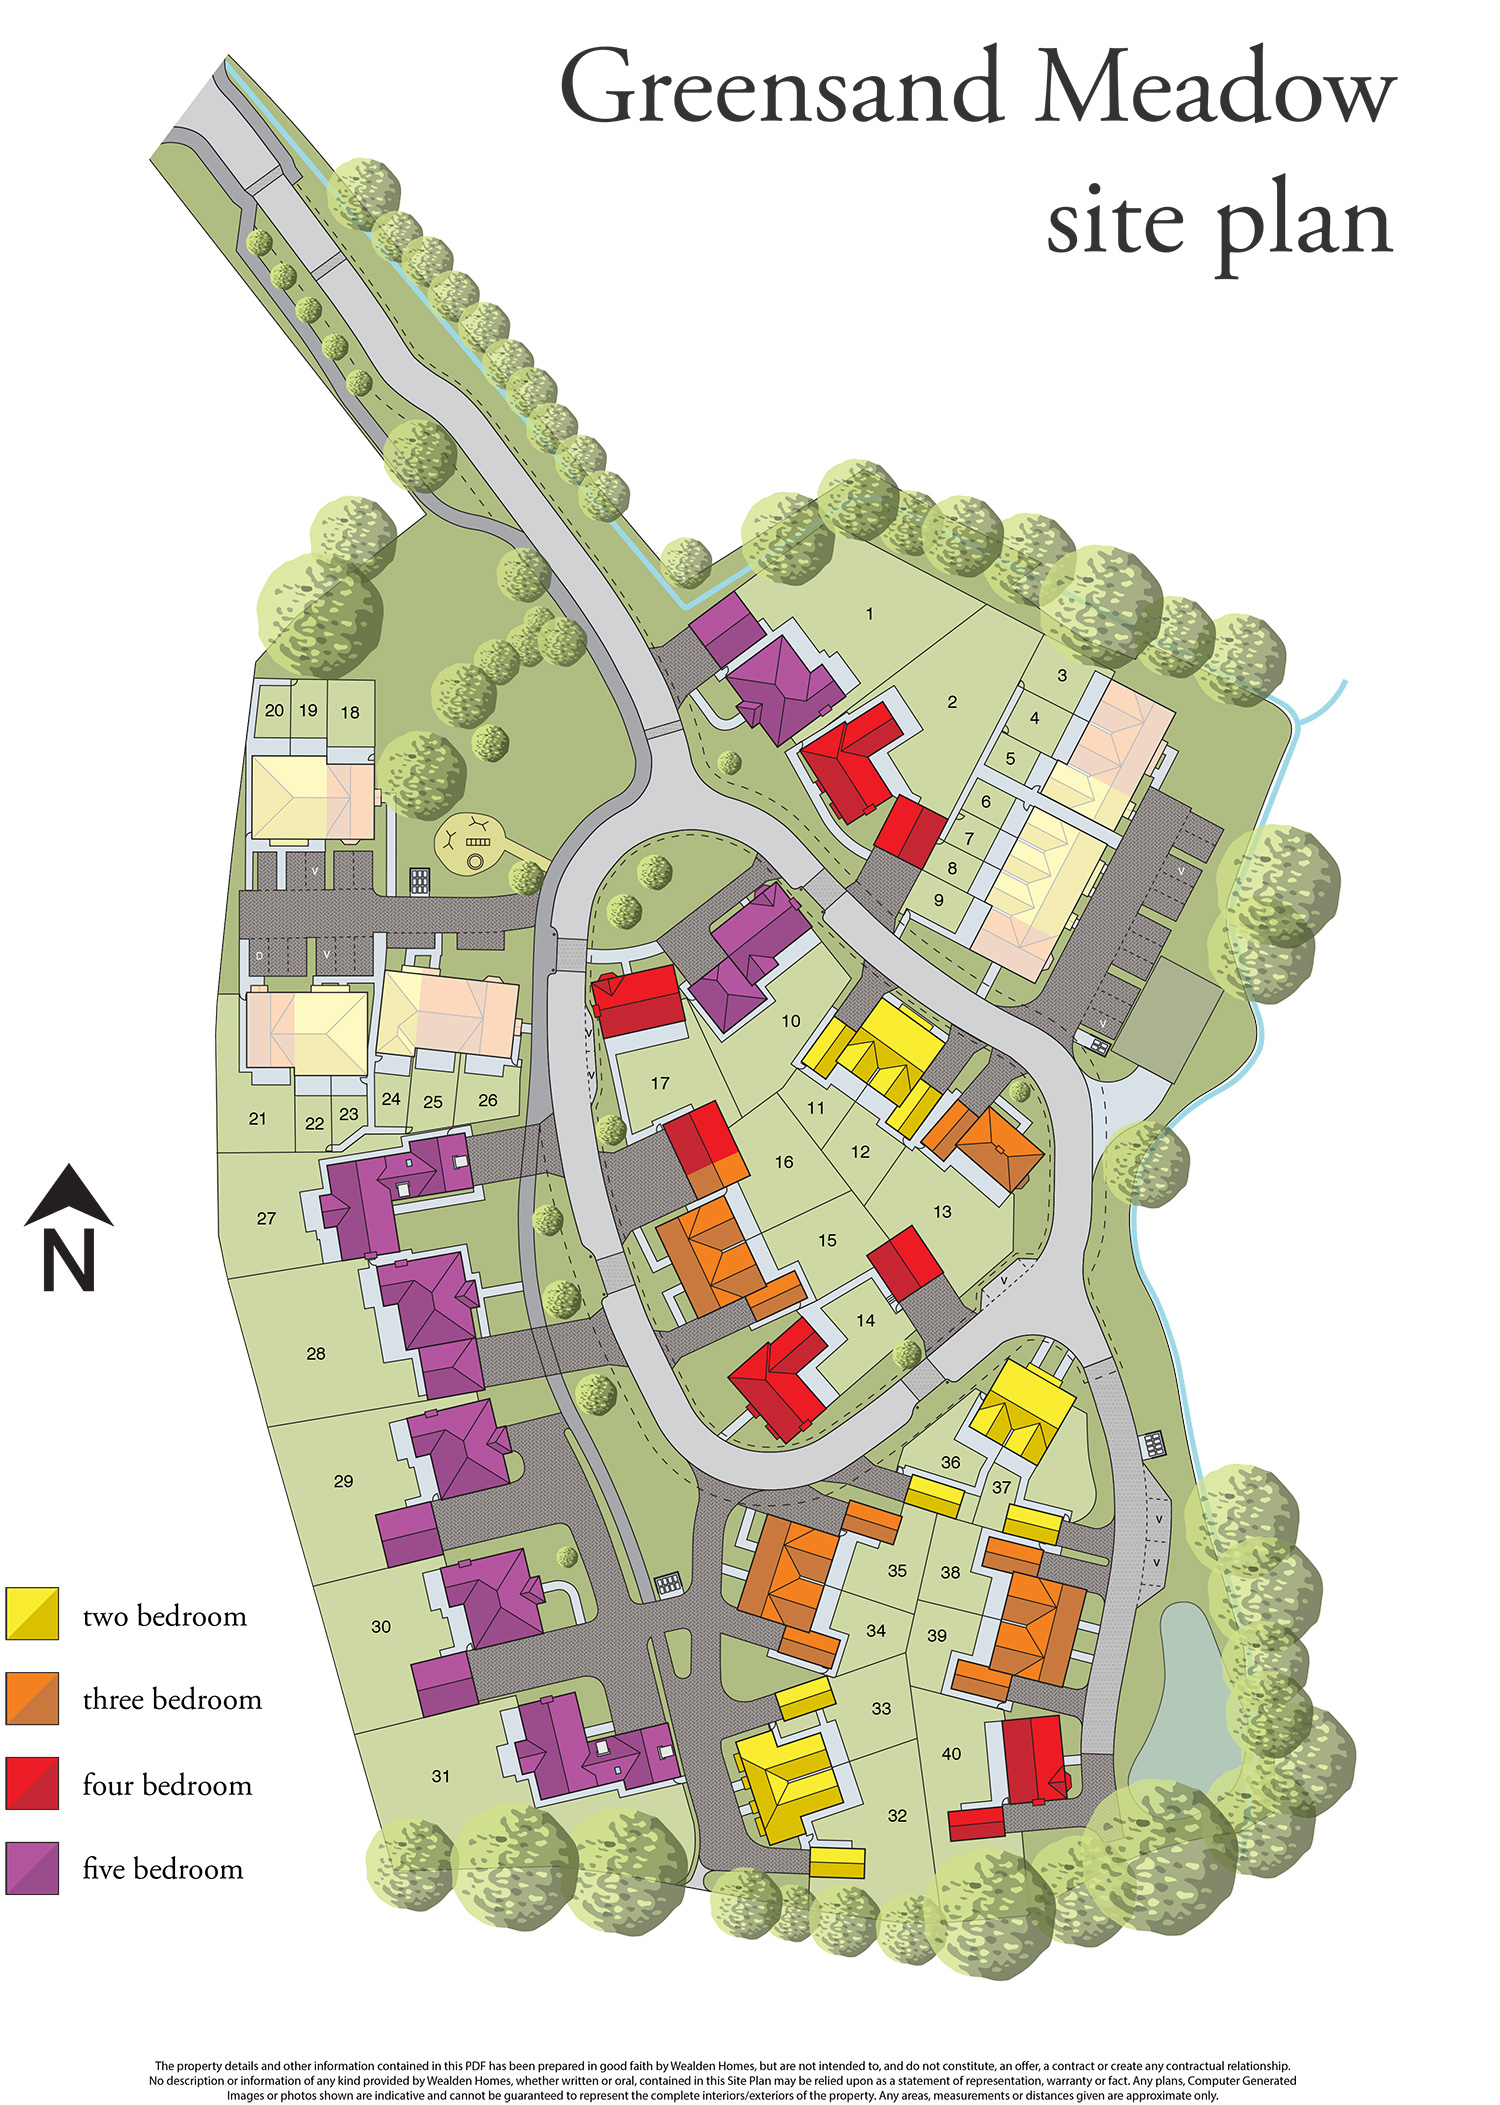 Sutton Valence, Greensand Meadow siteplan